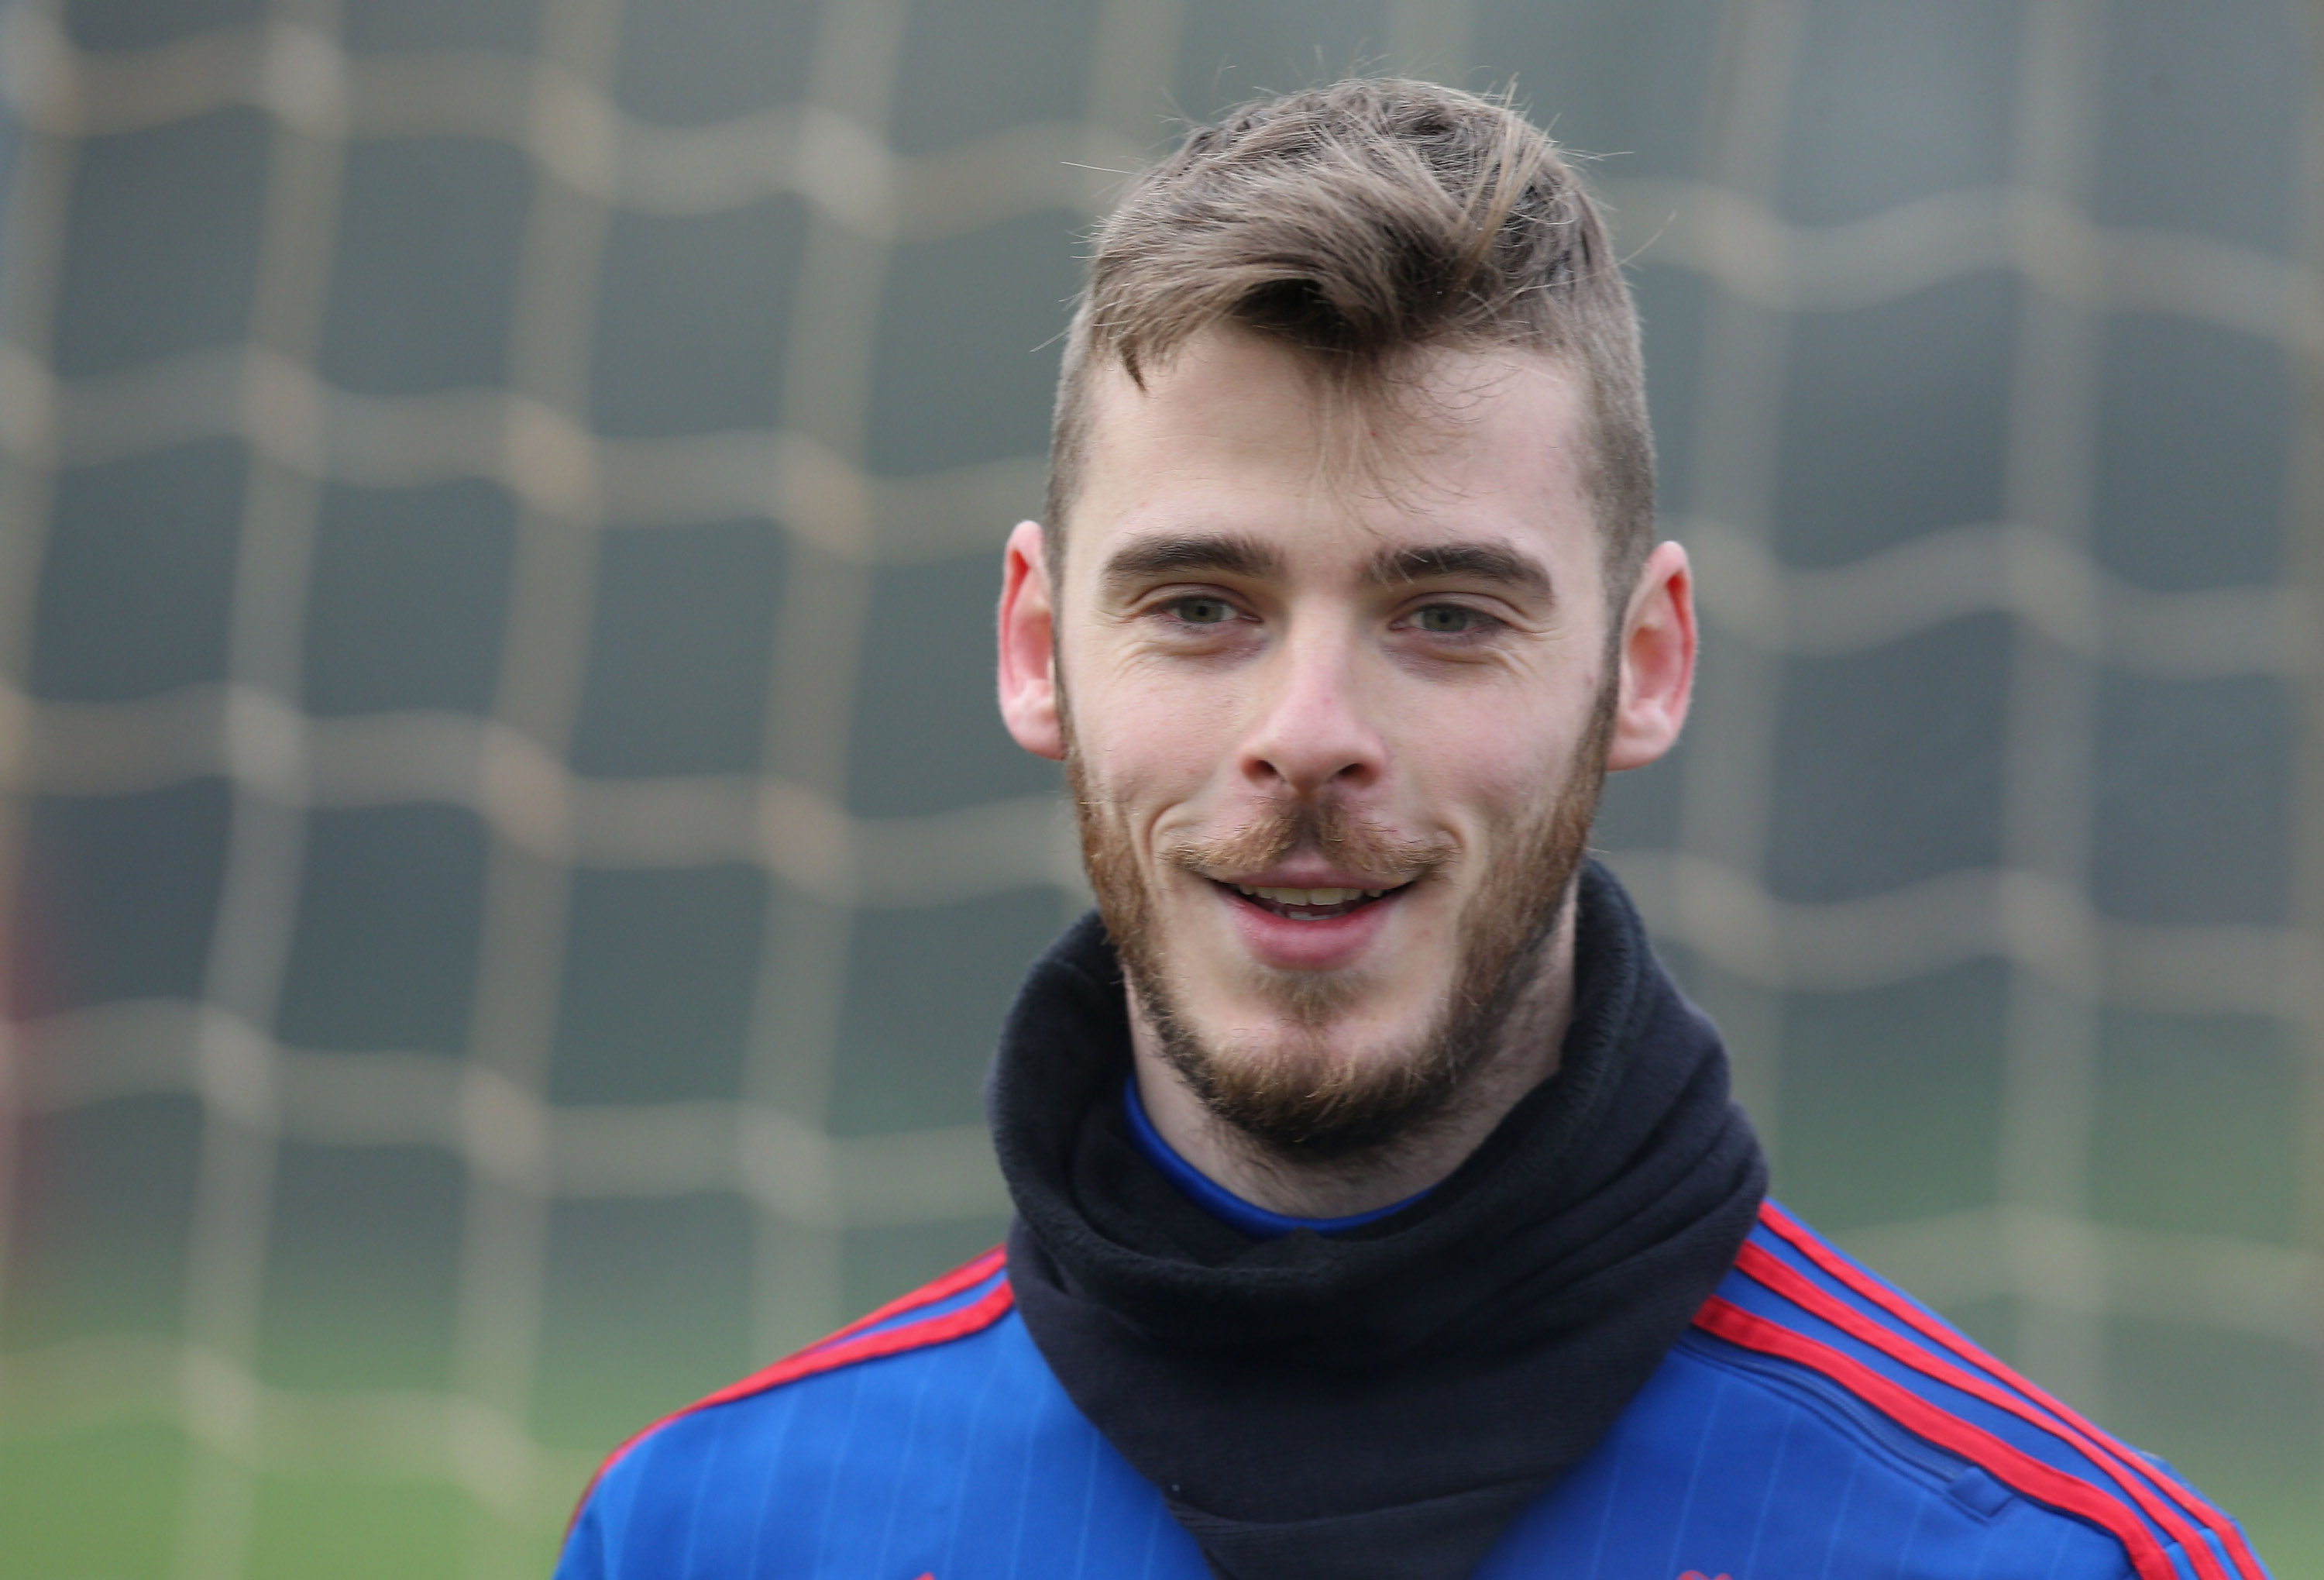 MANCHESTER, ENGLAND - JANUARY 07: (EXCLUSIVE COVERAGE) David de Gea of Manchester United in action during a first team training session at Aon Training Complex on January 7, 2016 in Manchester, England. (Photo by Matthew Peters/Man Utd via Getty Images)